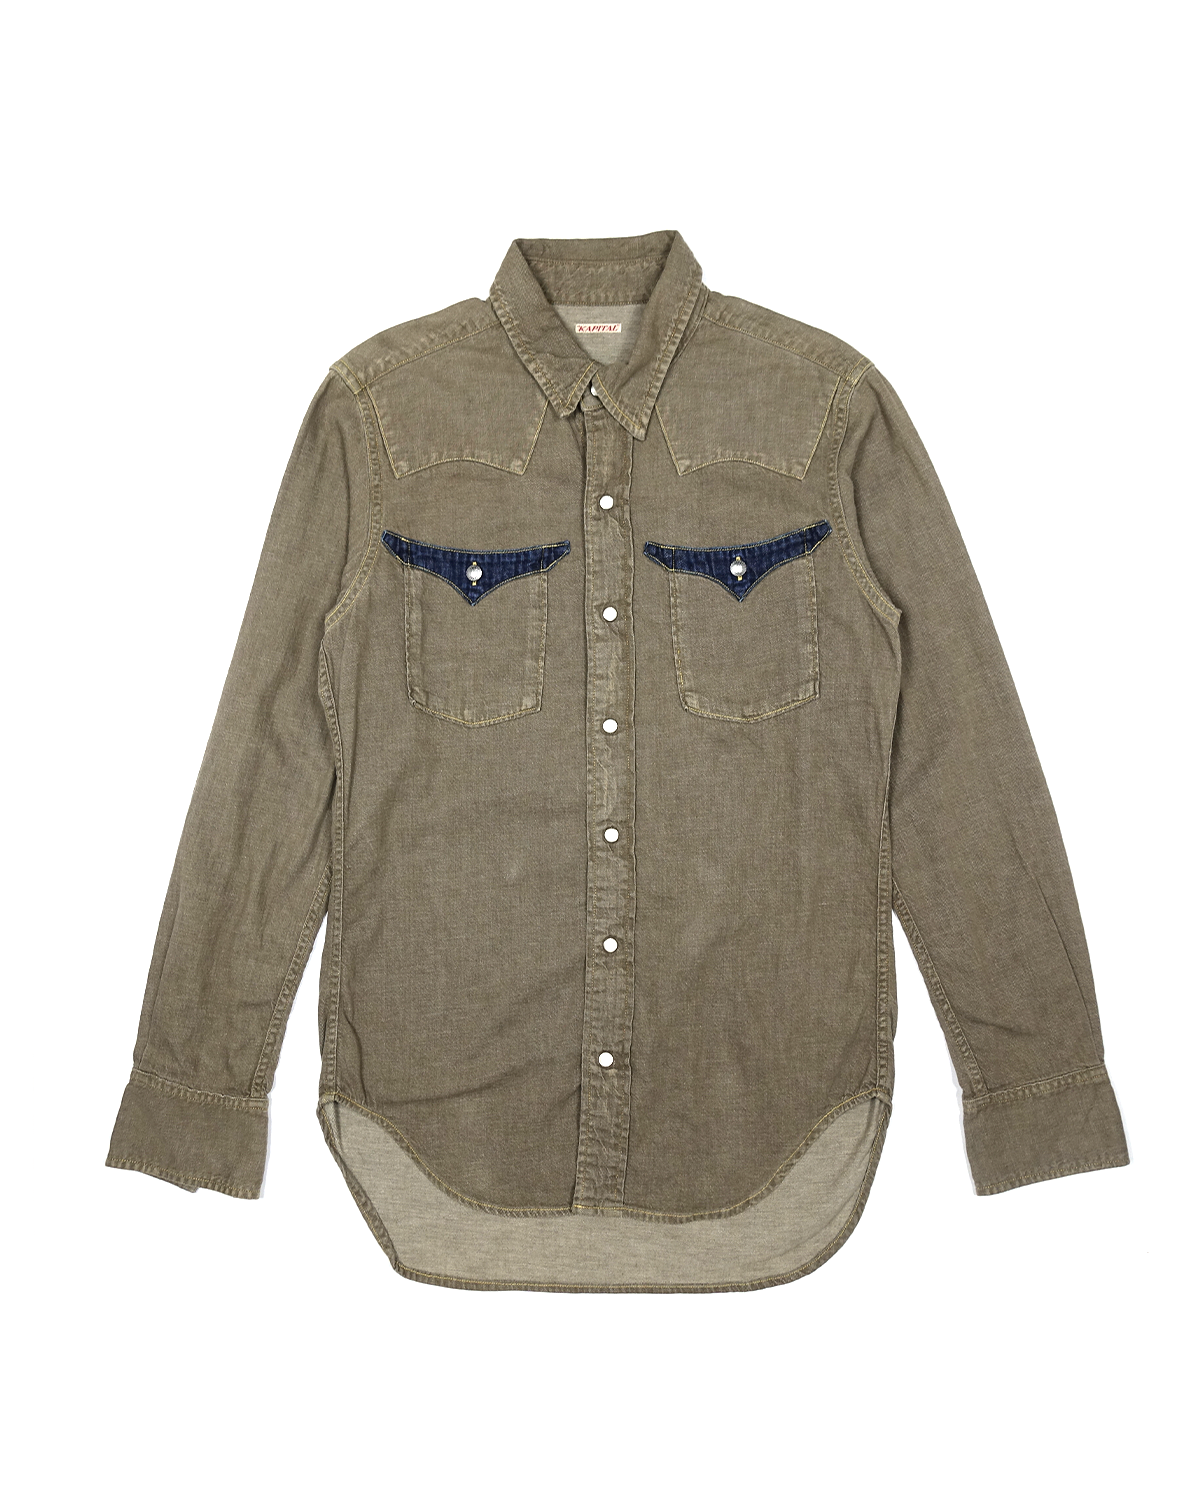 Kapital Denim Western Shirt with Concho Hardware Details